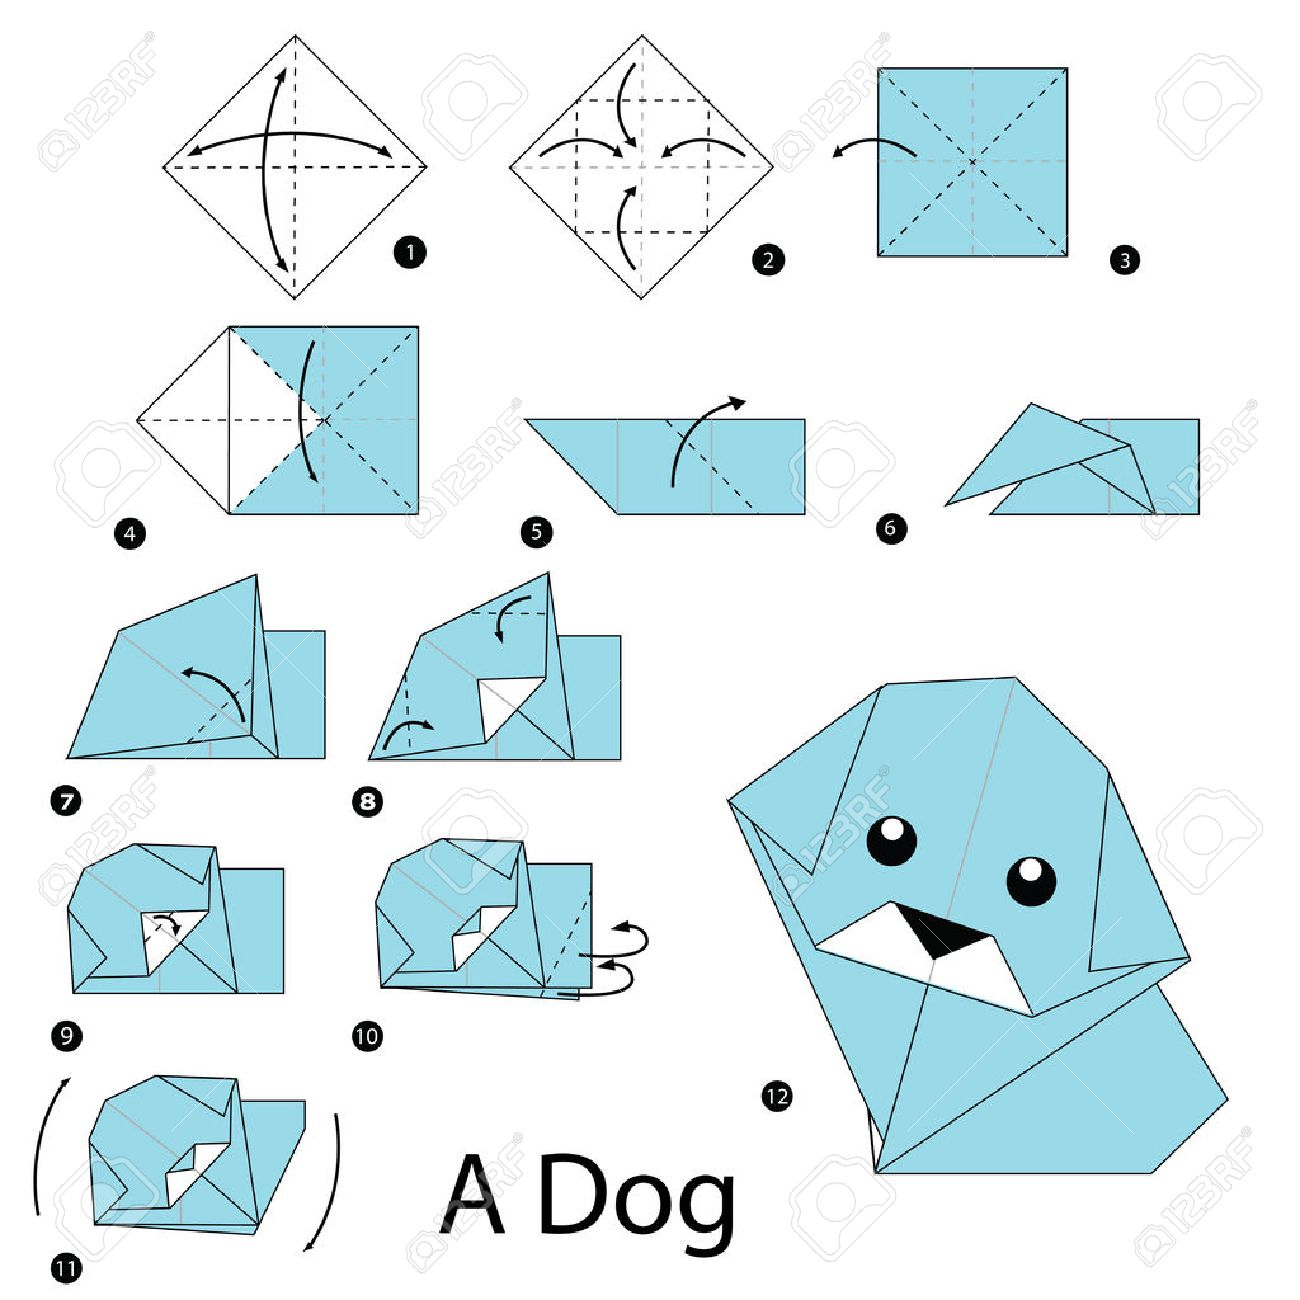 Origami dog face how to origami - Origami Dog Step By Step Instructions How To Make Origami Dog